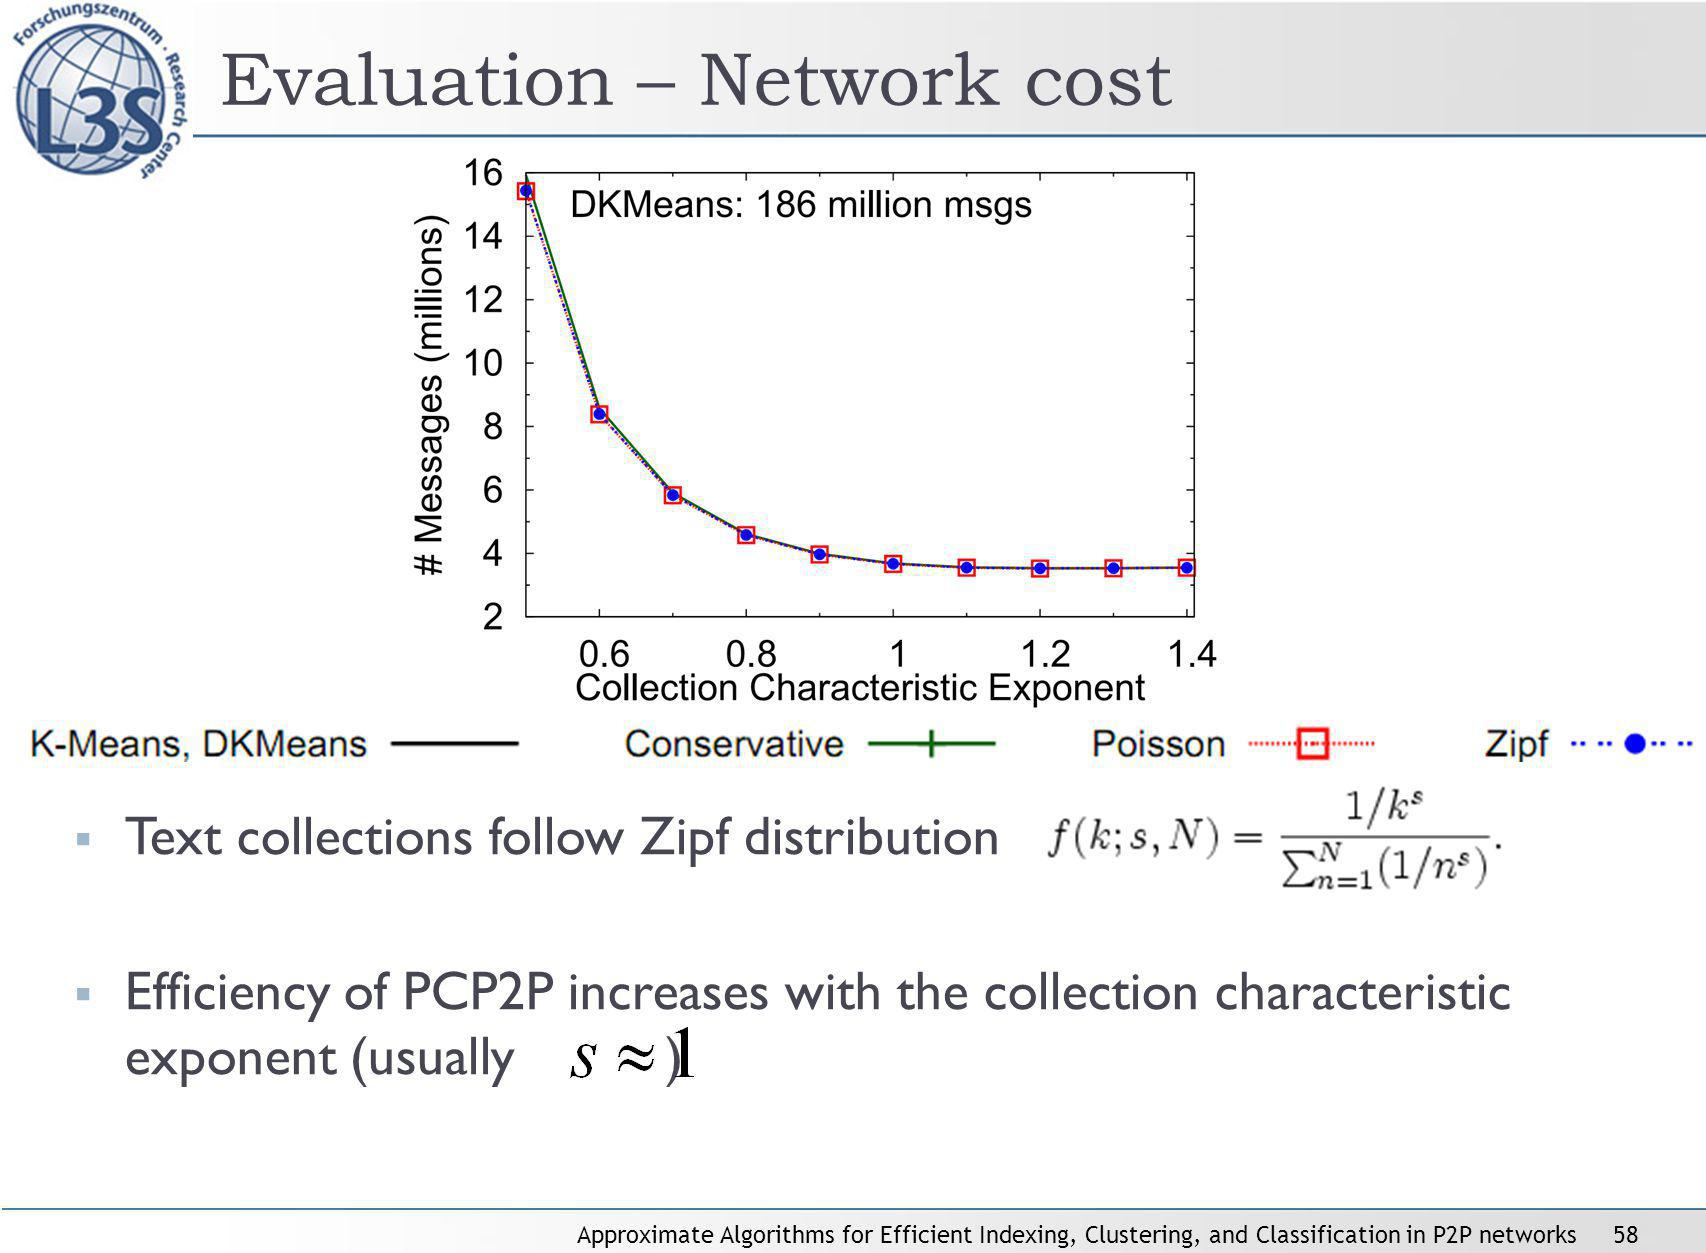 Approximate Algorithms for Efficient Indexing, Clustering, and Classification in P2P networks58 Evaluation – Network cost Text collections follow Zipf distribution Efficiency of PCP2P increases with the collection characteristic exponent (usually )